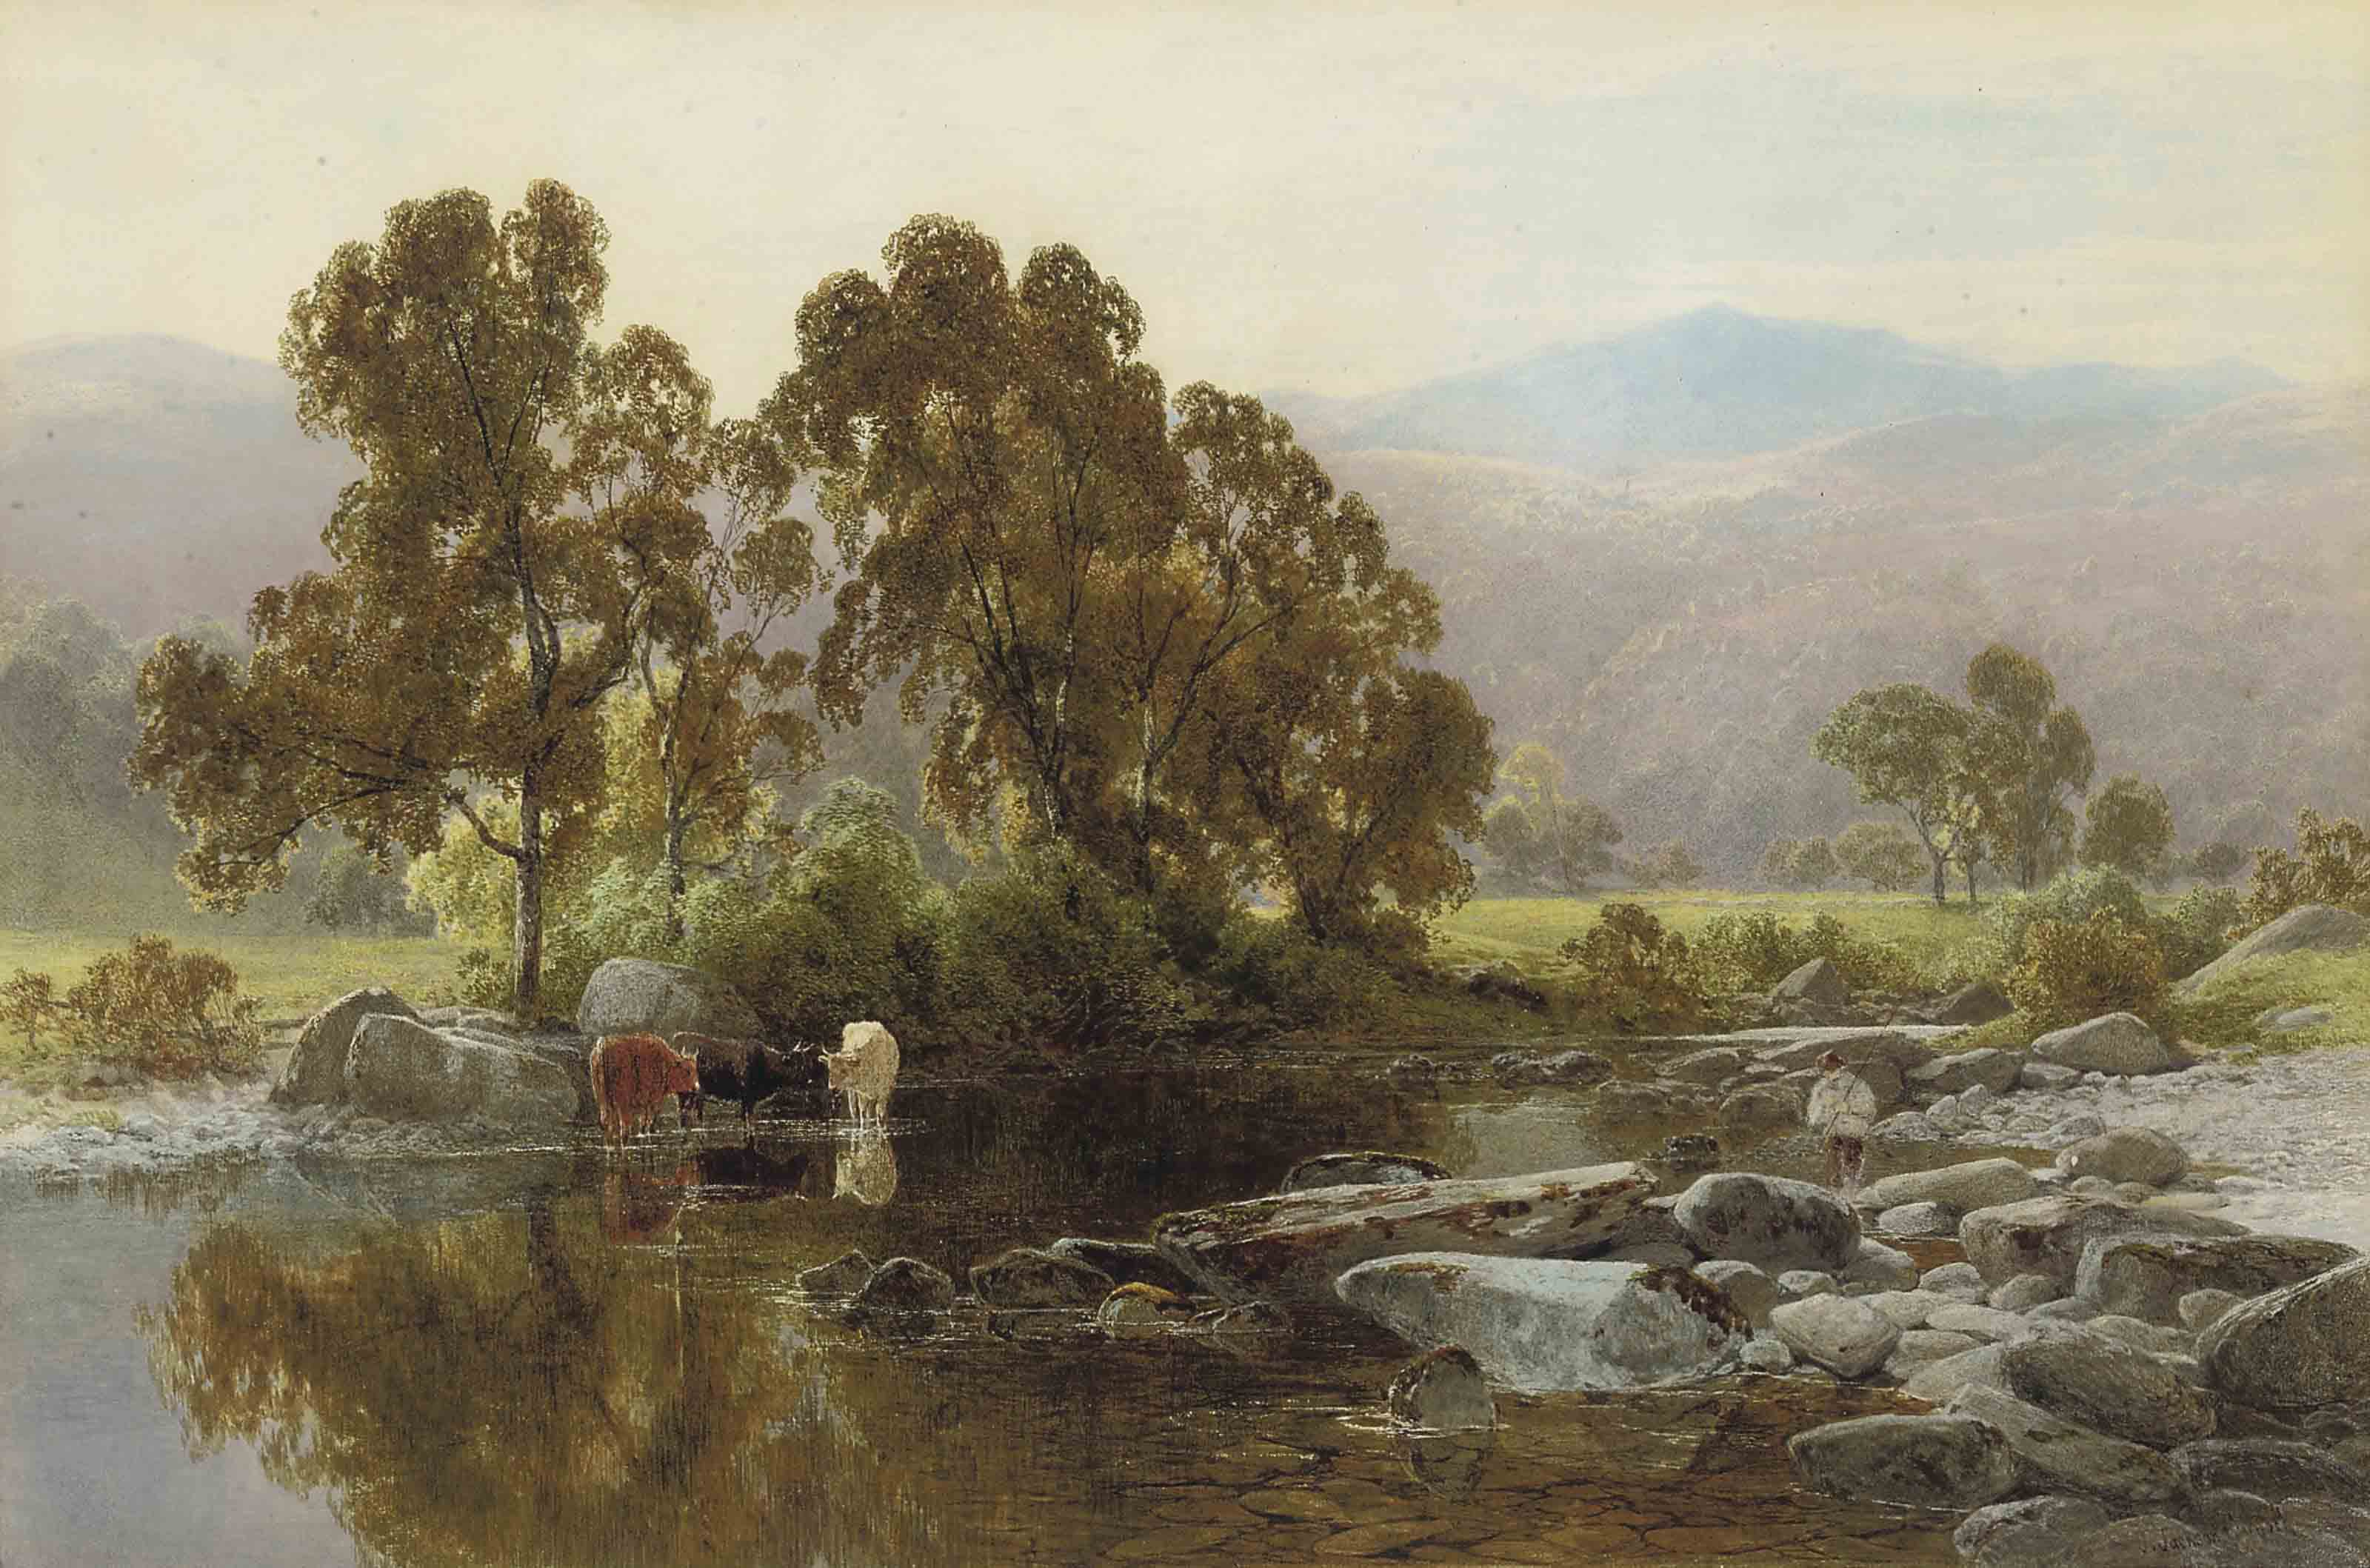 The riverside at Capel Curig, Wales